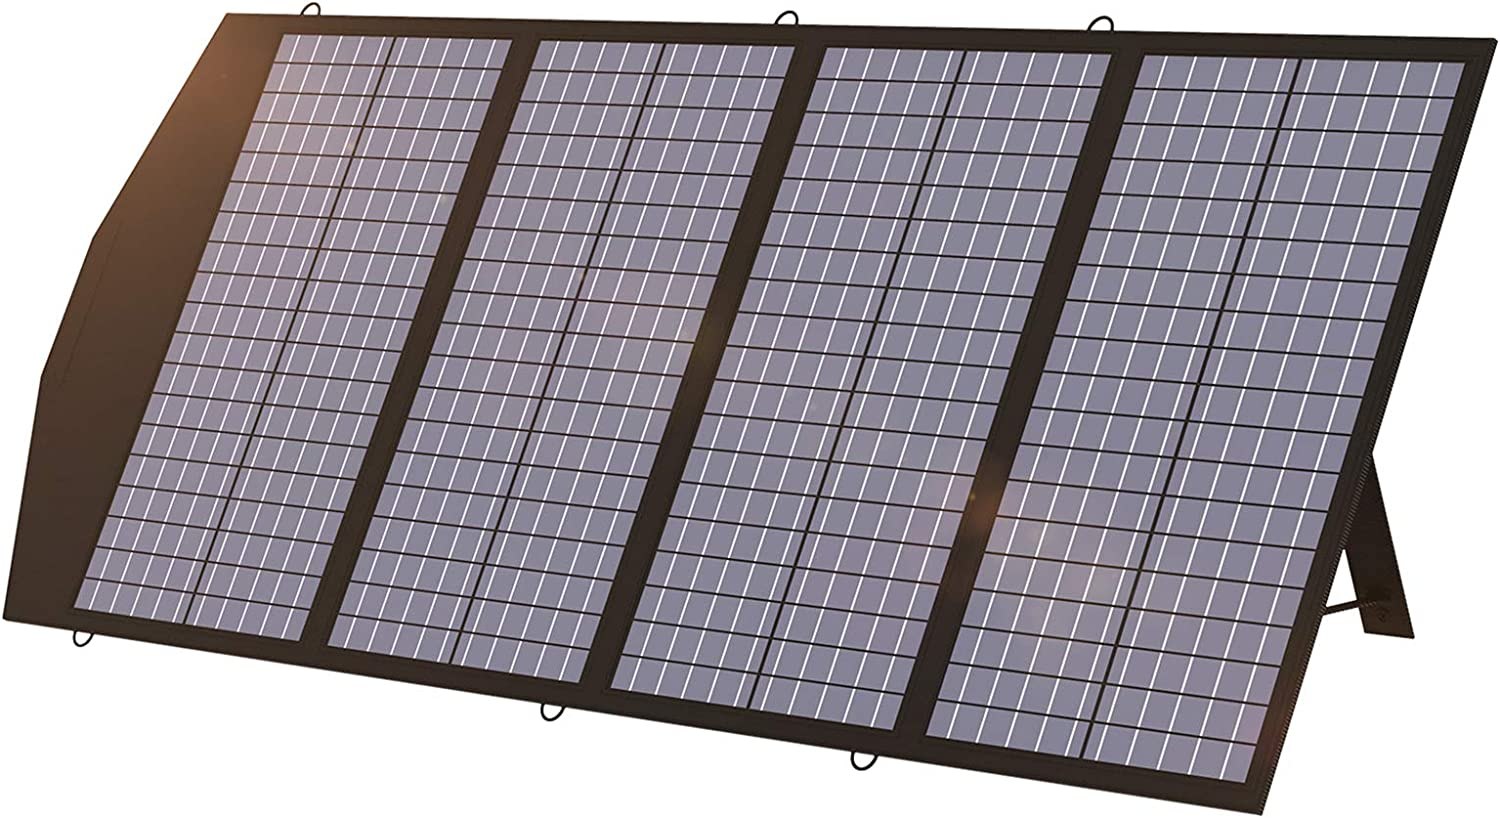 ALLPOWERS 120W Portable Solar Panel Charger for Laptops, Power Station, Foldable US Solar Cell Solar Charger with MC- 4, DC, and USB Output, for Most Solar Generator, Power Station, Cellphone